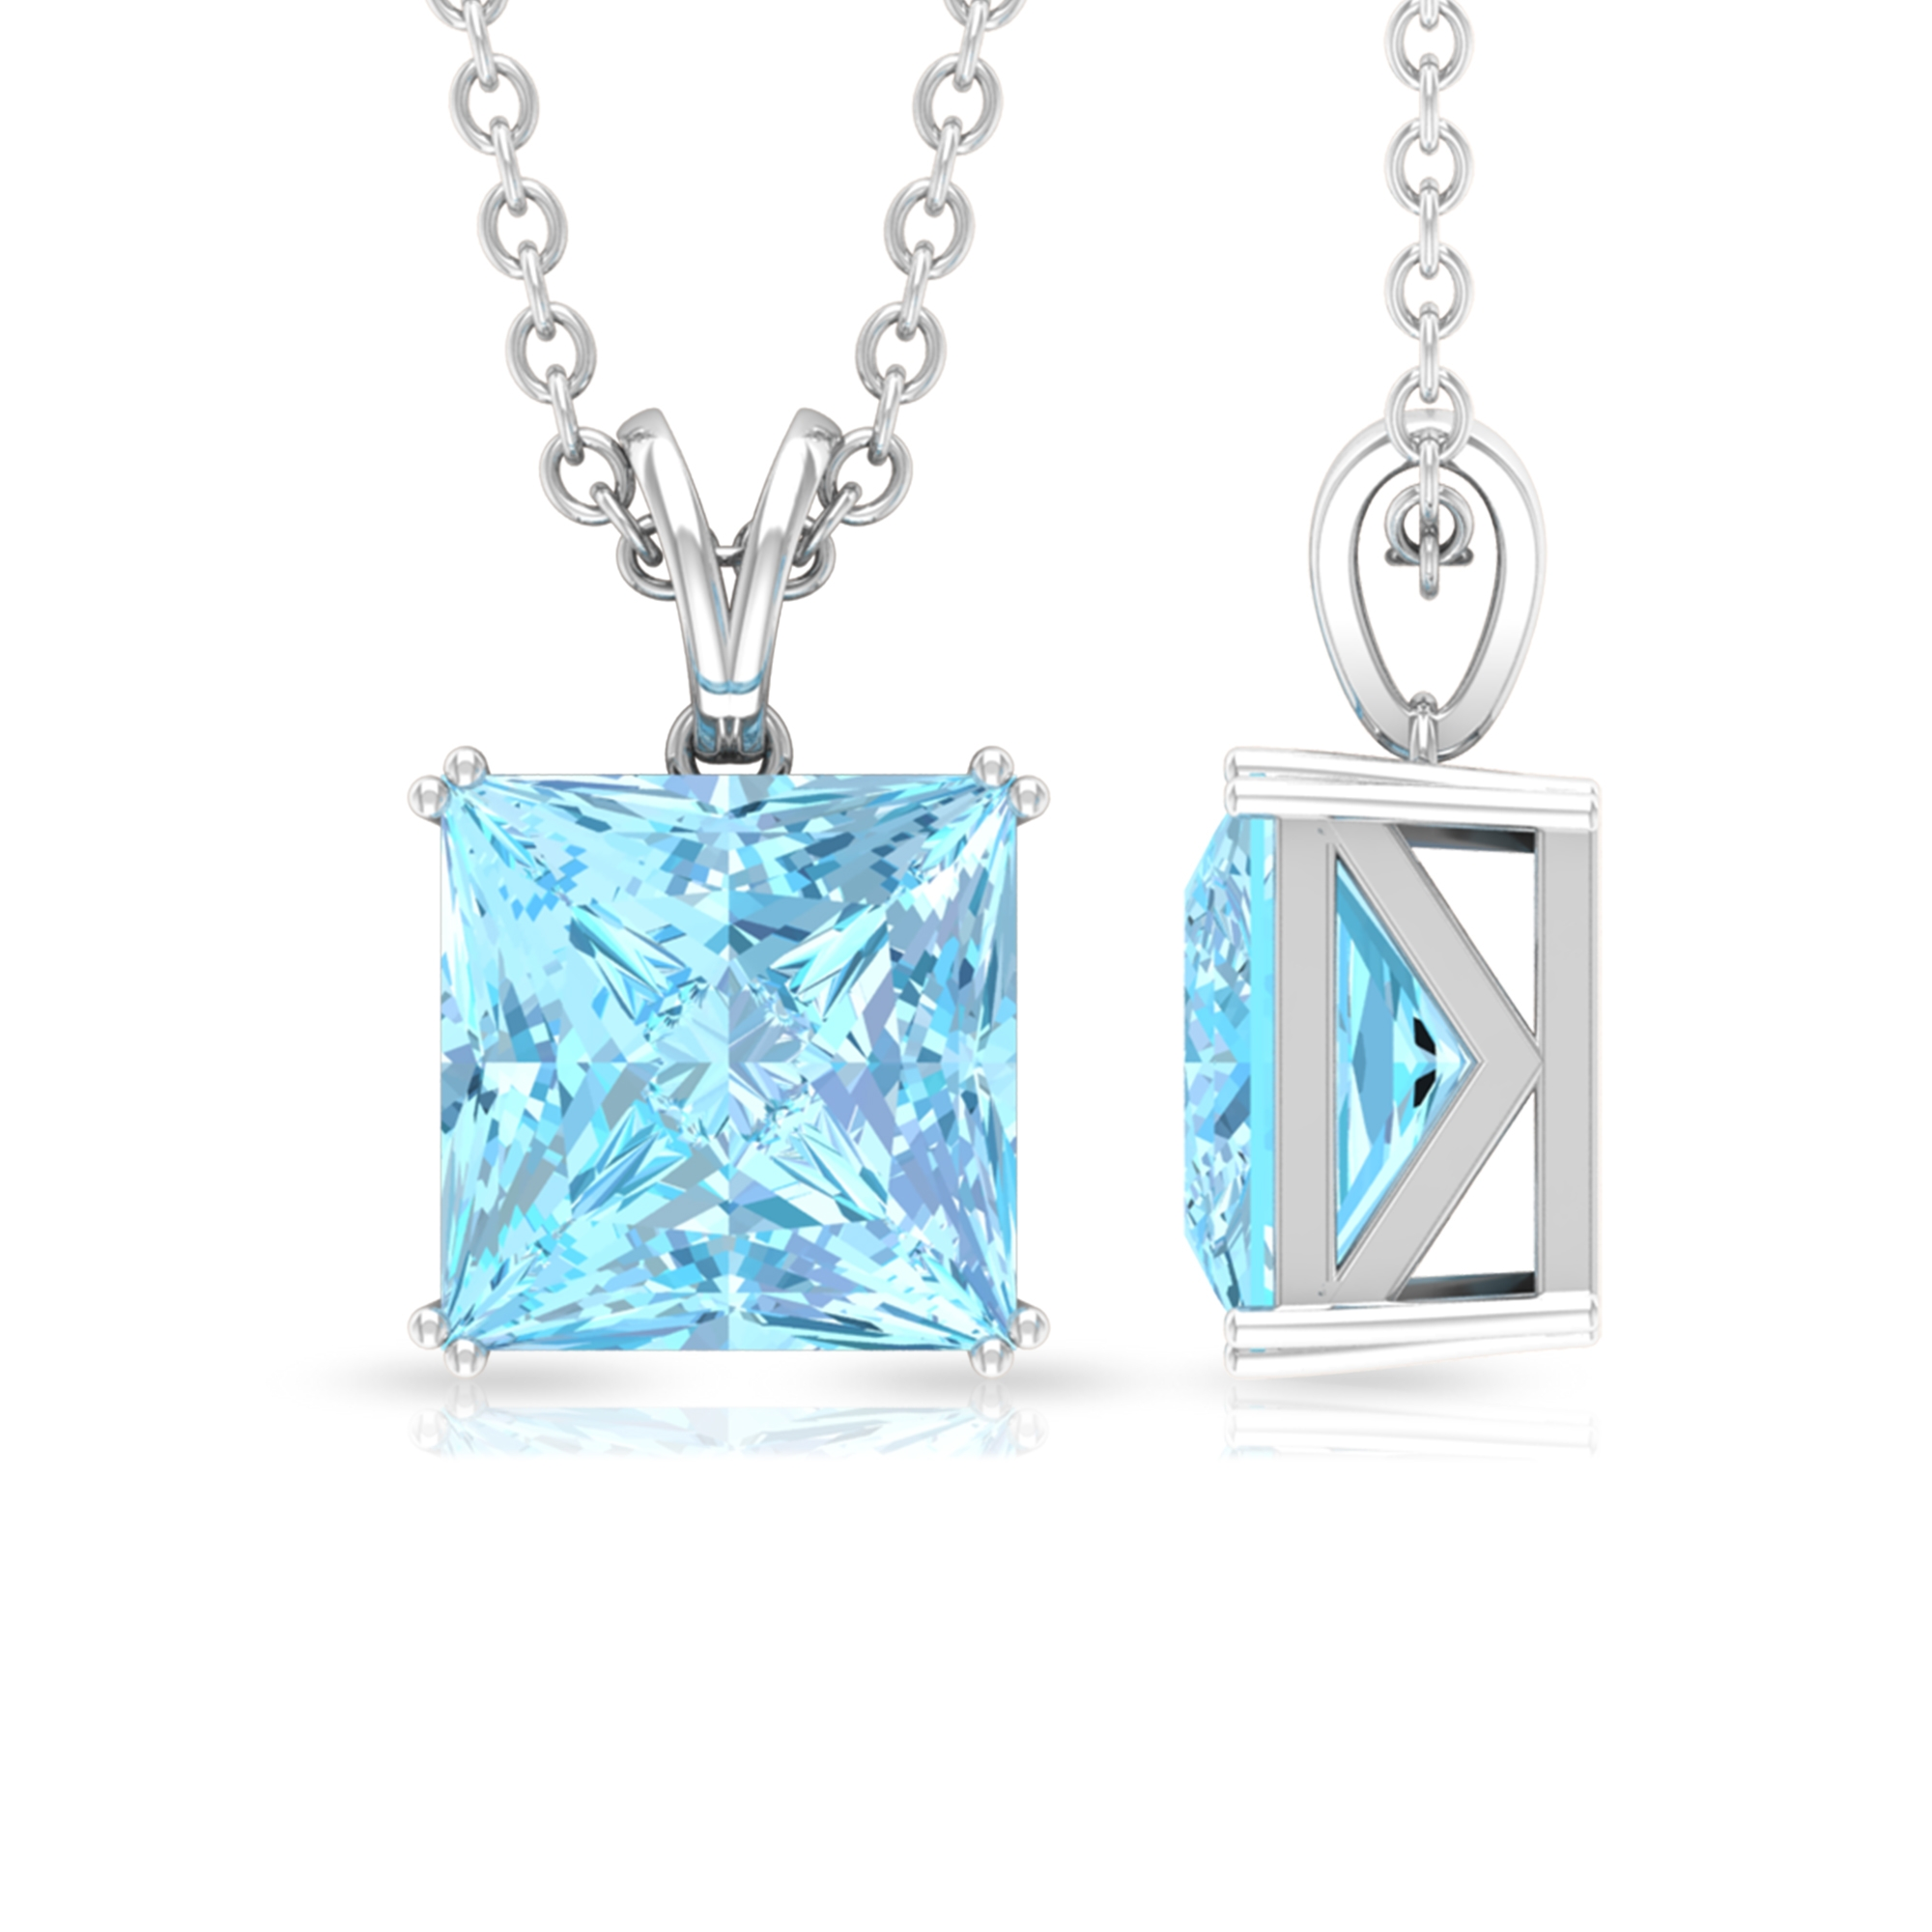 7X7 MM Princess Cut Aquamarine Solitaire Pendant in Double Prong Setting with Rabbit Ear Bail